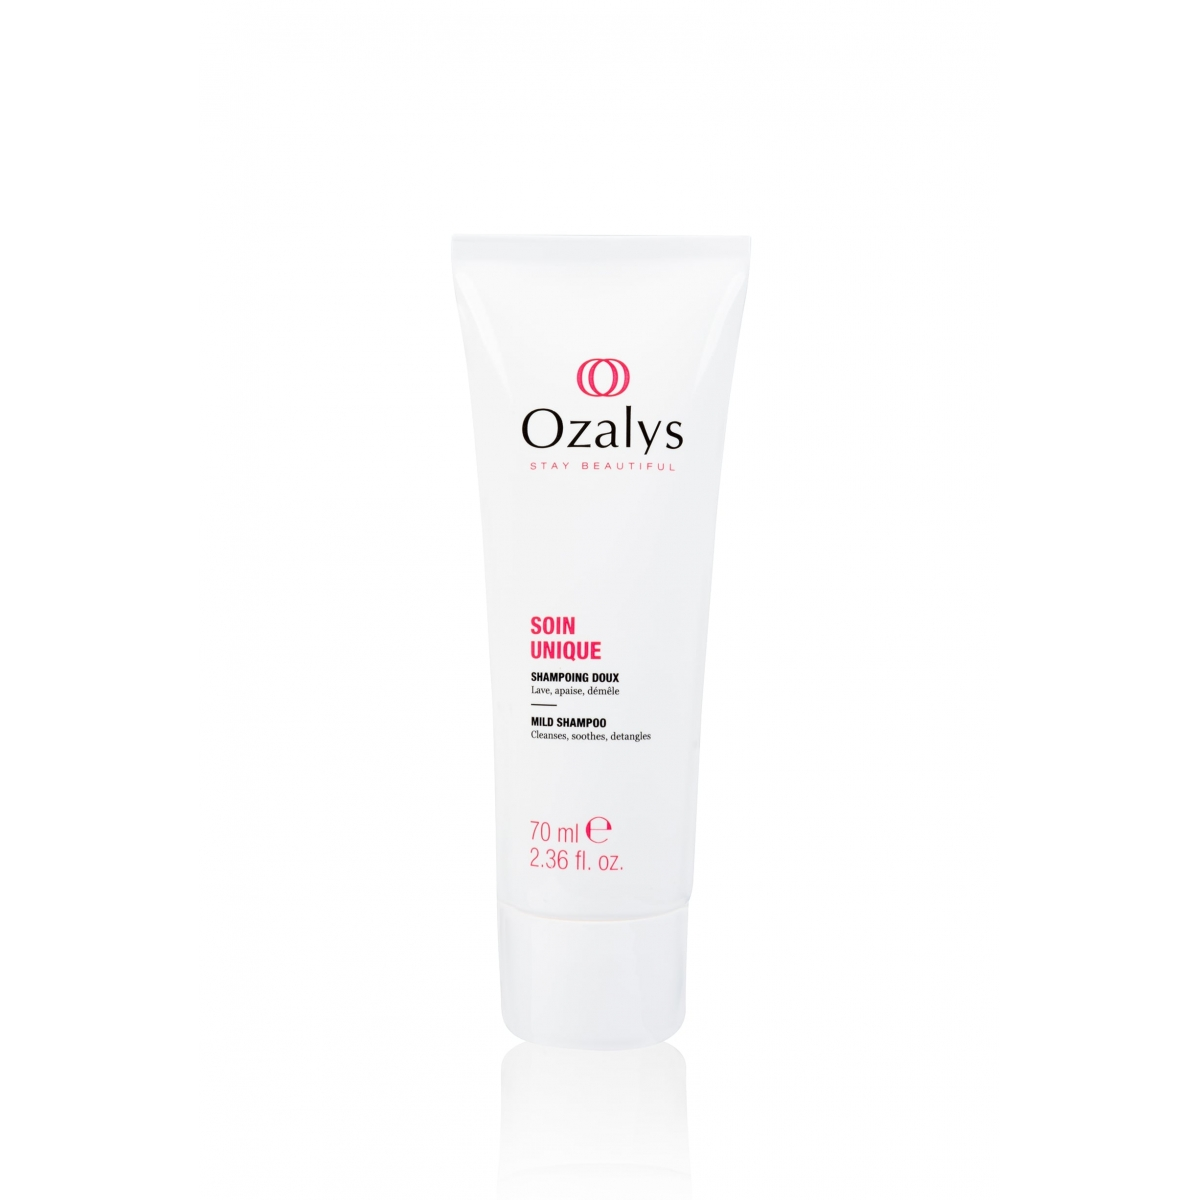 SOINS CANCER - SHAMPOING CHEVEUX DOUX SOIN UNIQUE OZALYS